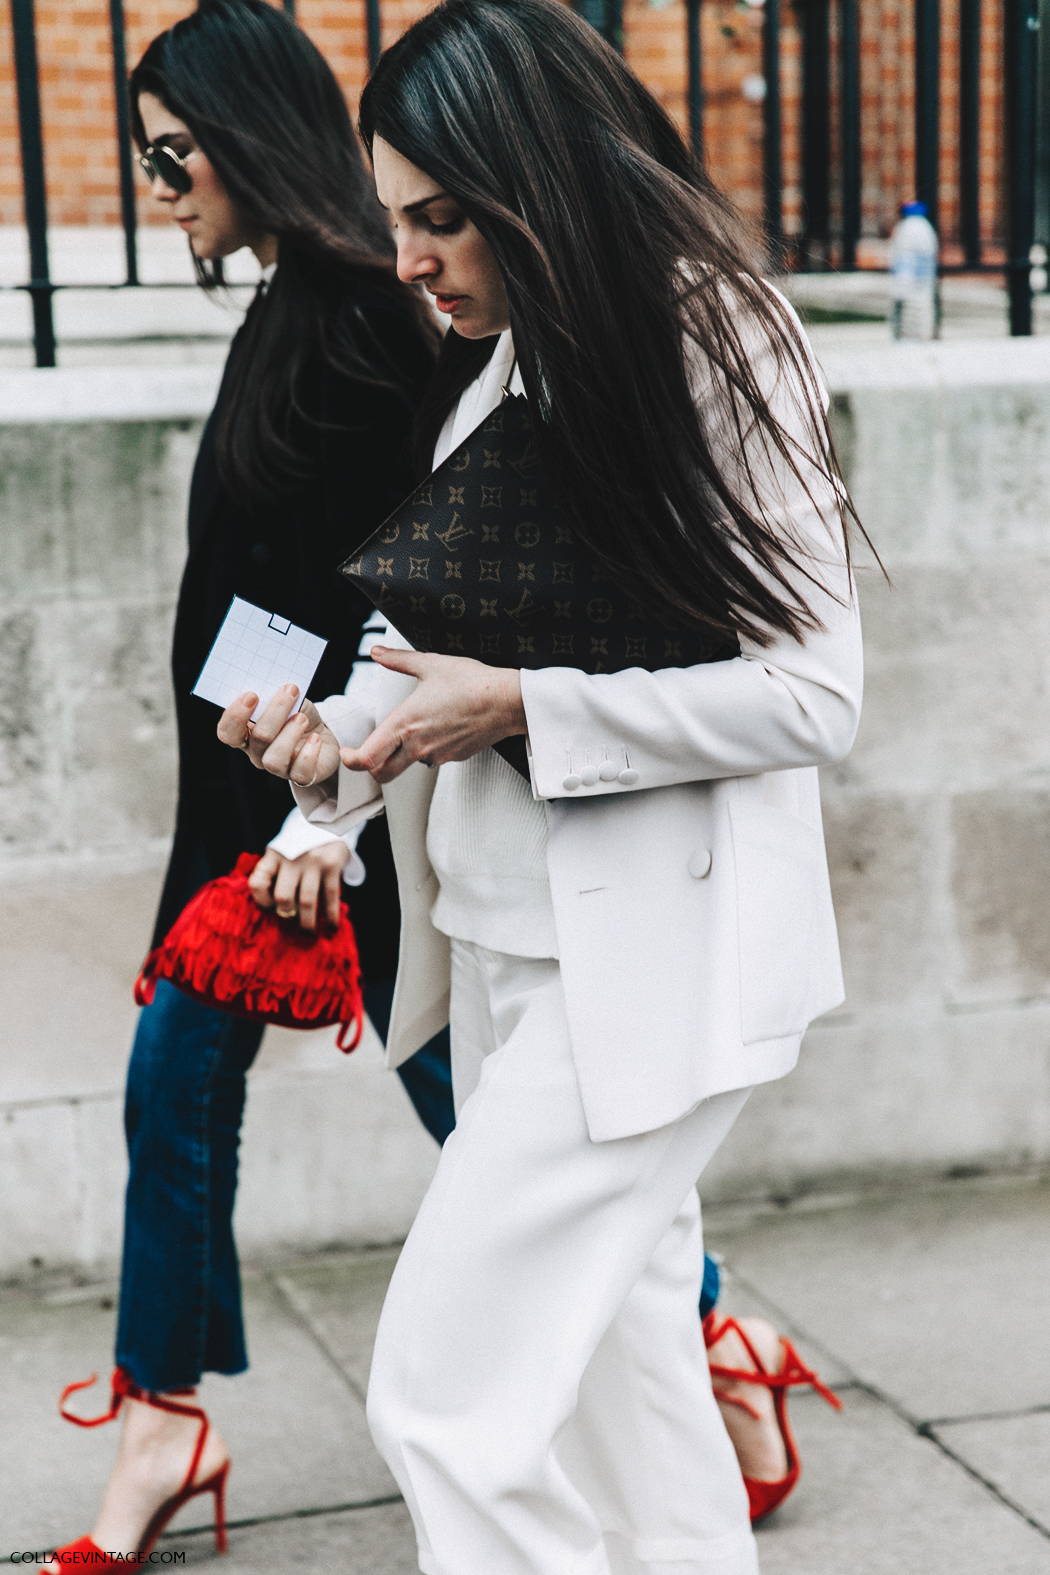 LFW-London_Fashion_Week_Fall_16-Street_Style-Collage_Vintage-1